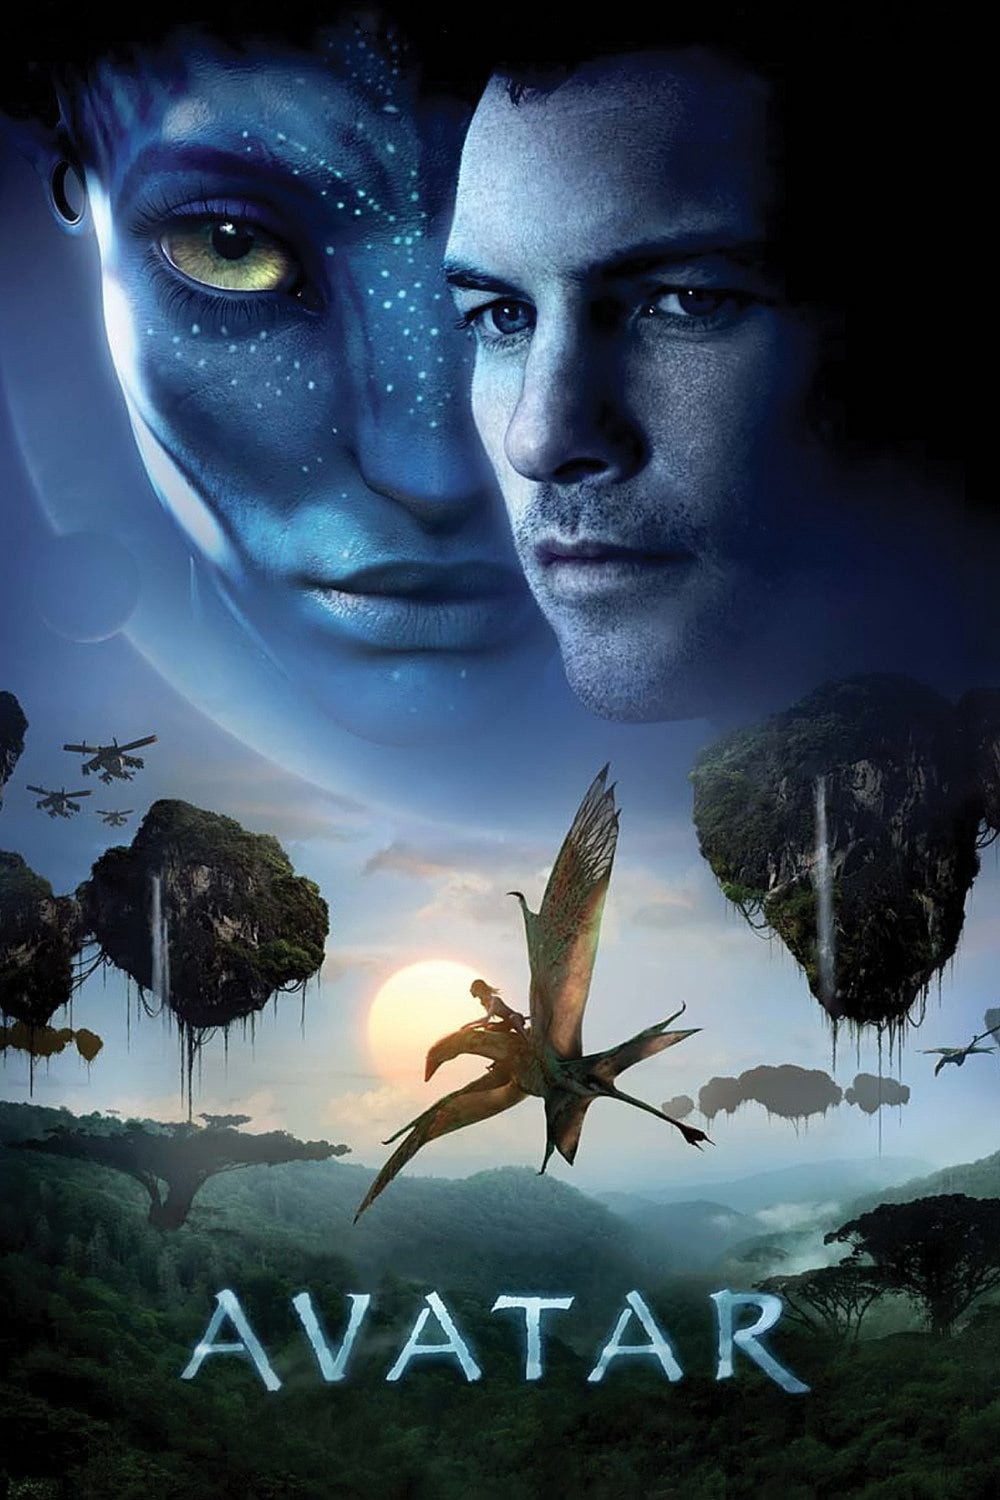 avatar full movie watch online free